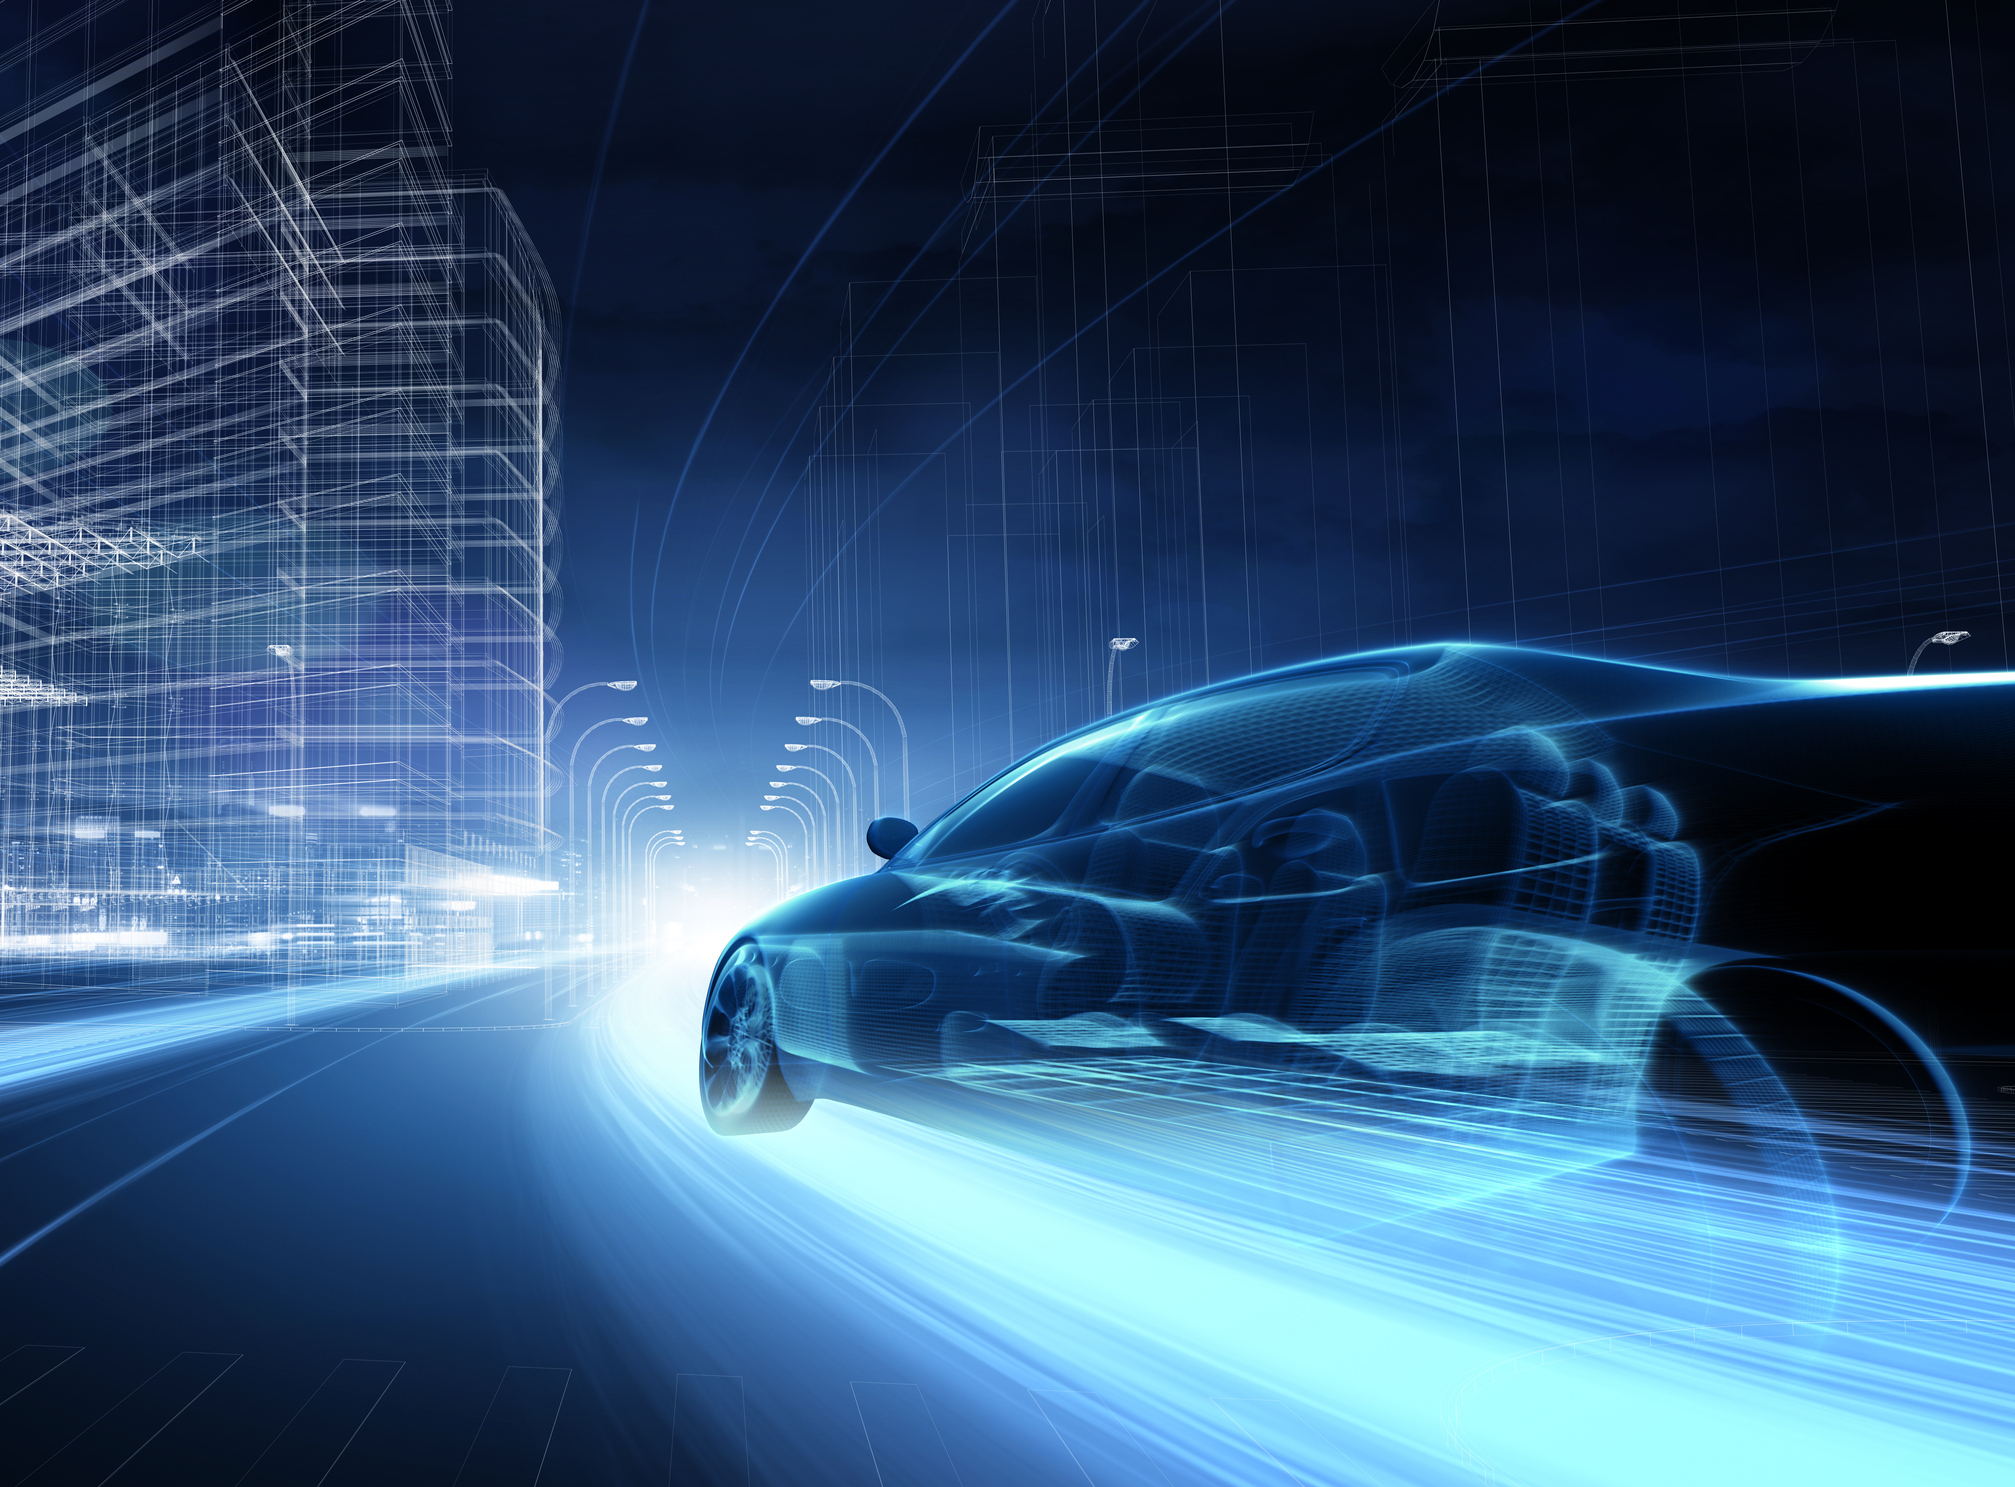 VAST Data Puts Major Automaker in the Fast Lane